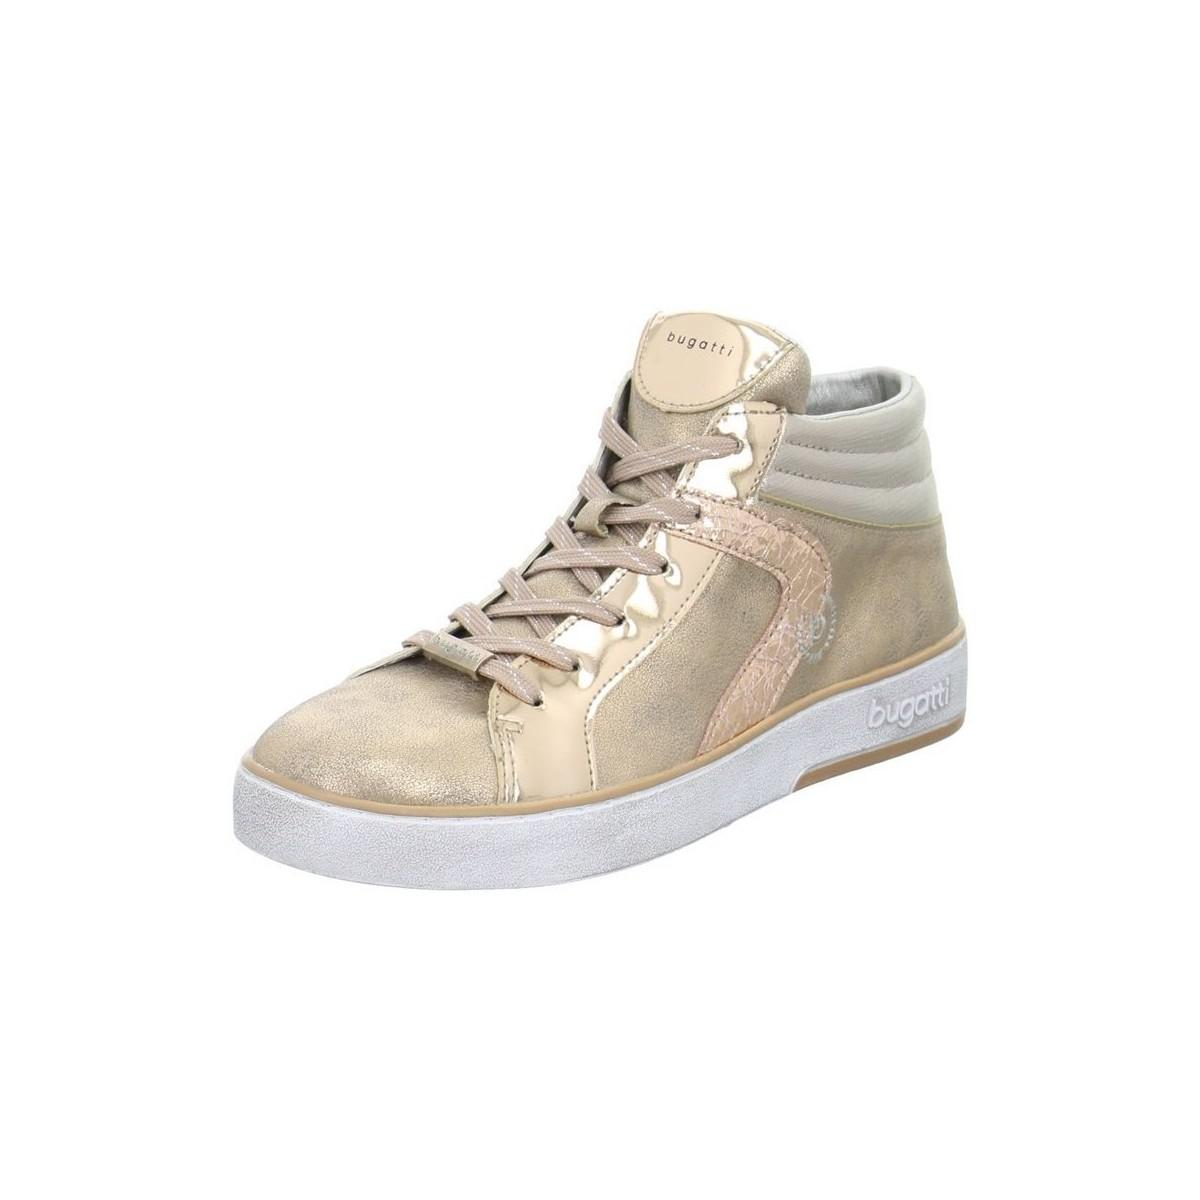 Bugatti 4222913050503490 Women s Shoes (high-top Trainers) In Pink ... 614c85e422